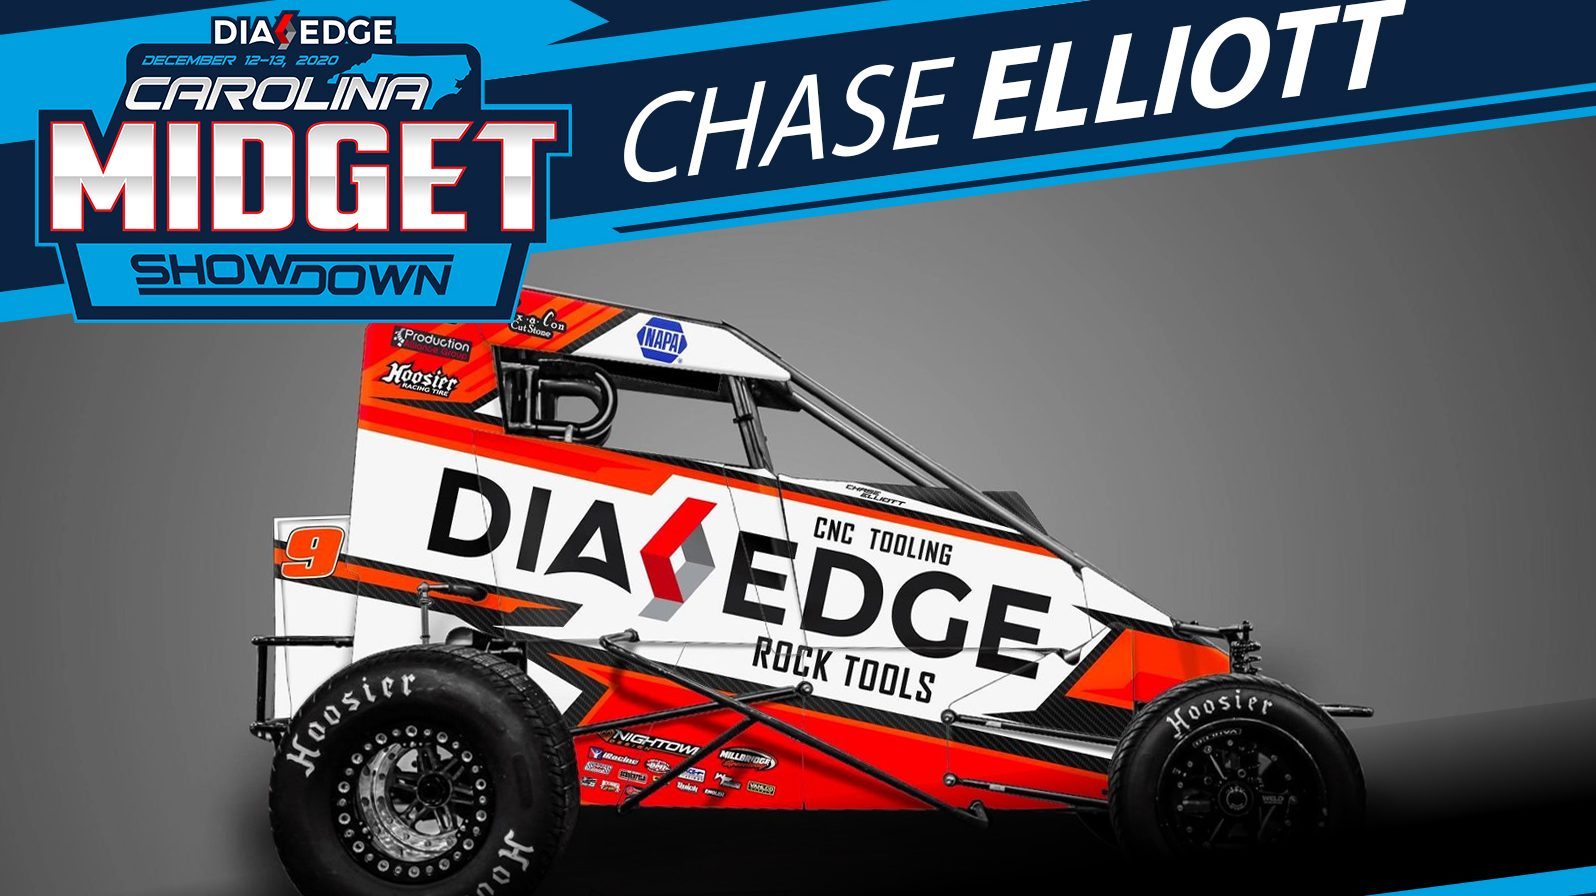 Chase Elliott prepares for Chili Bowl, debuts in midgets at Millbridge Speedway